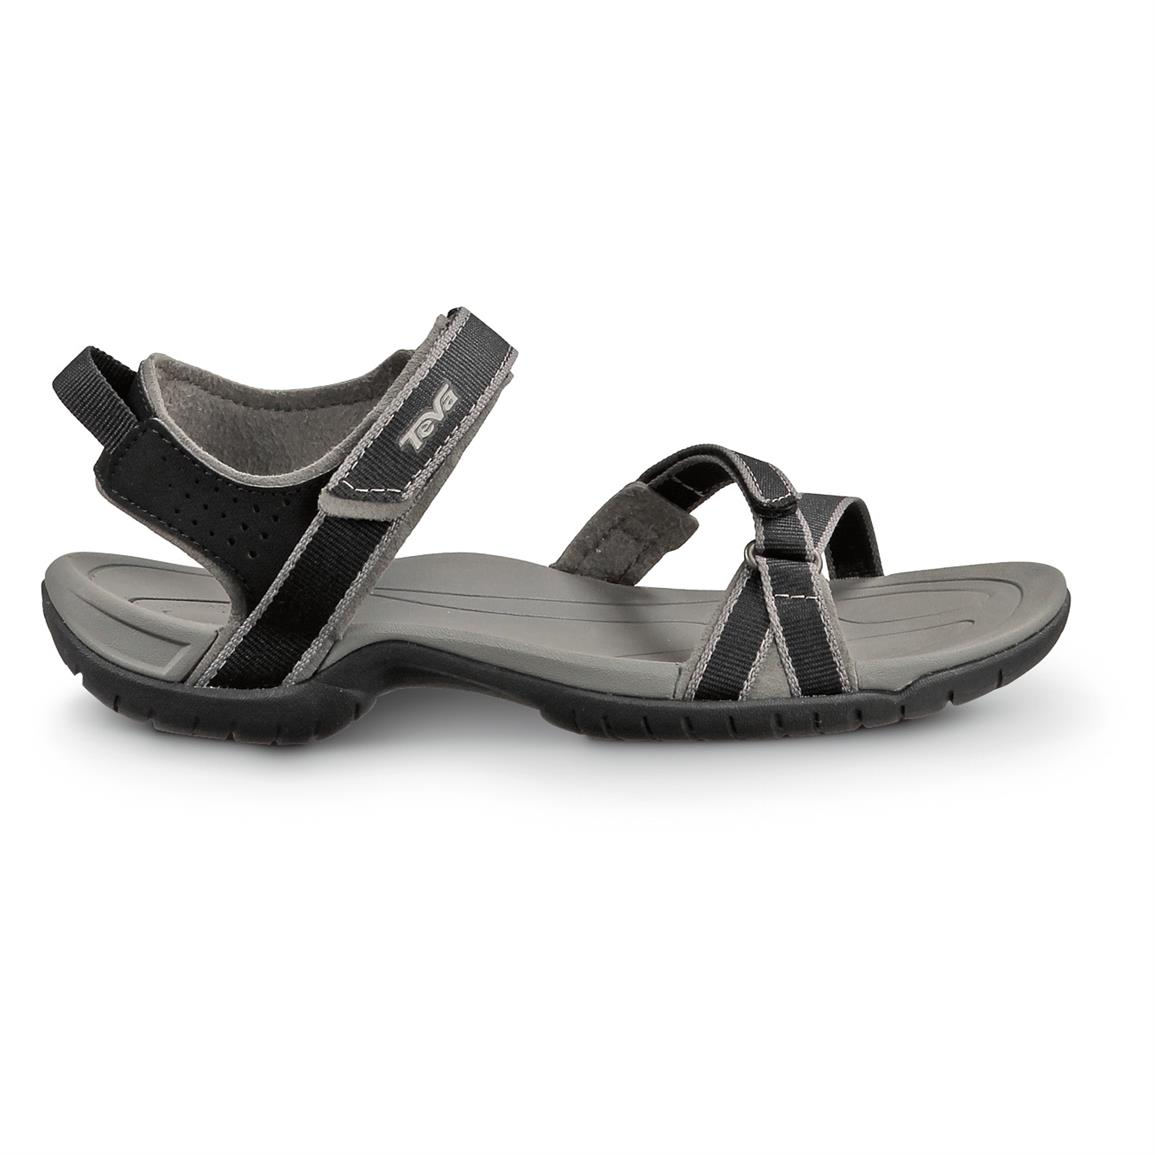 Teva Women's Verra Sport Sandals, Black